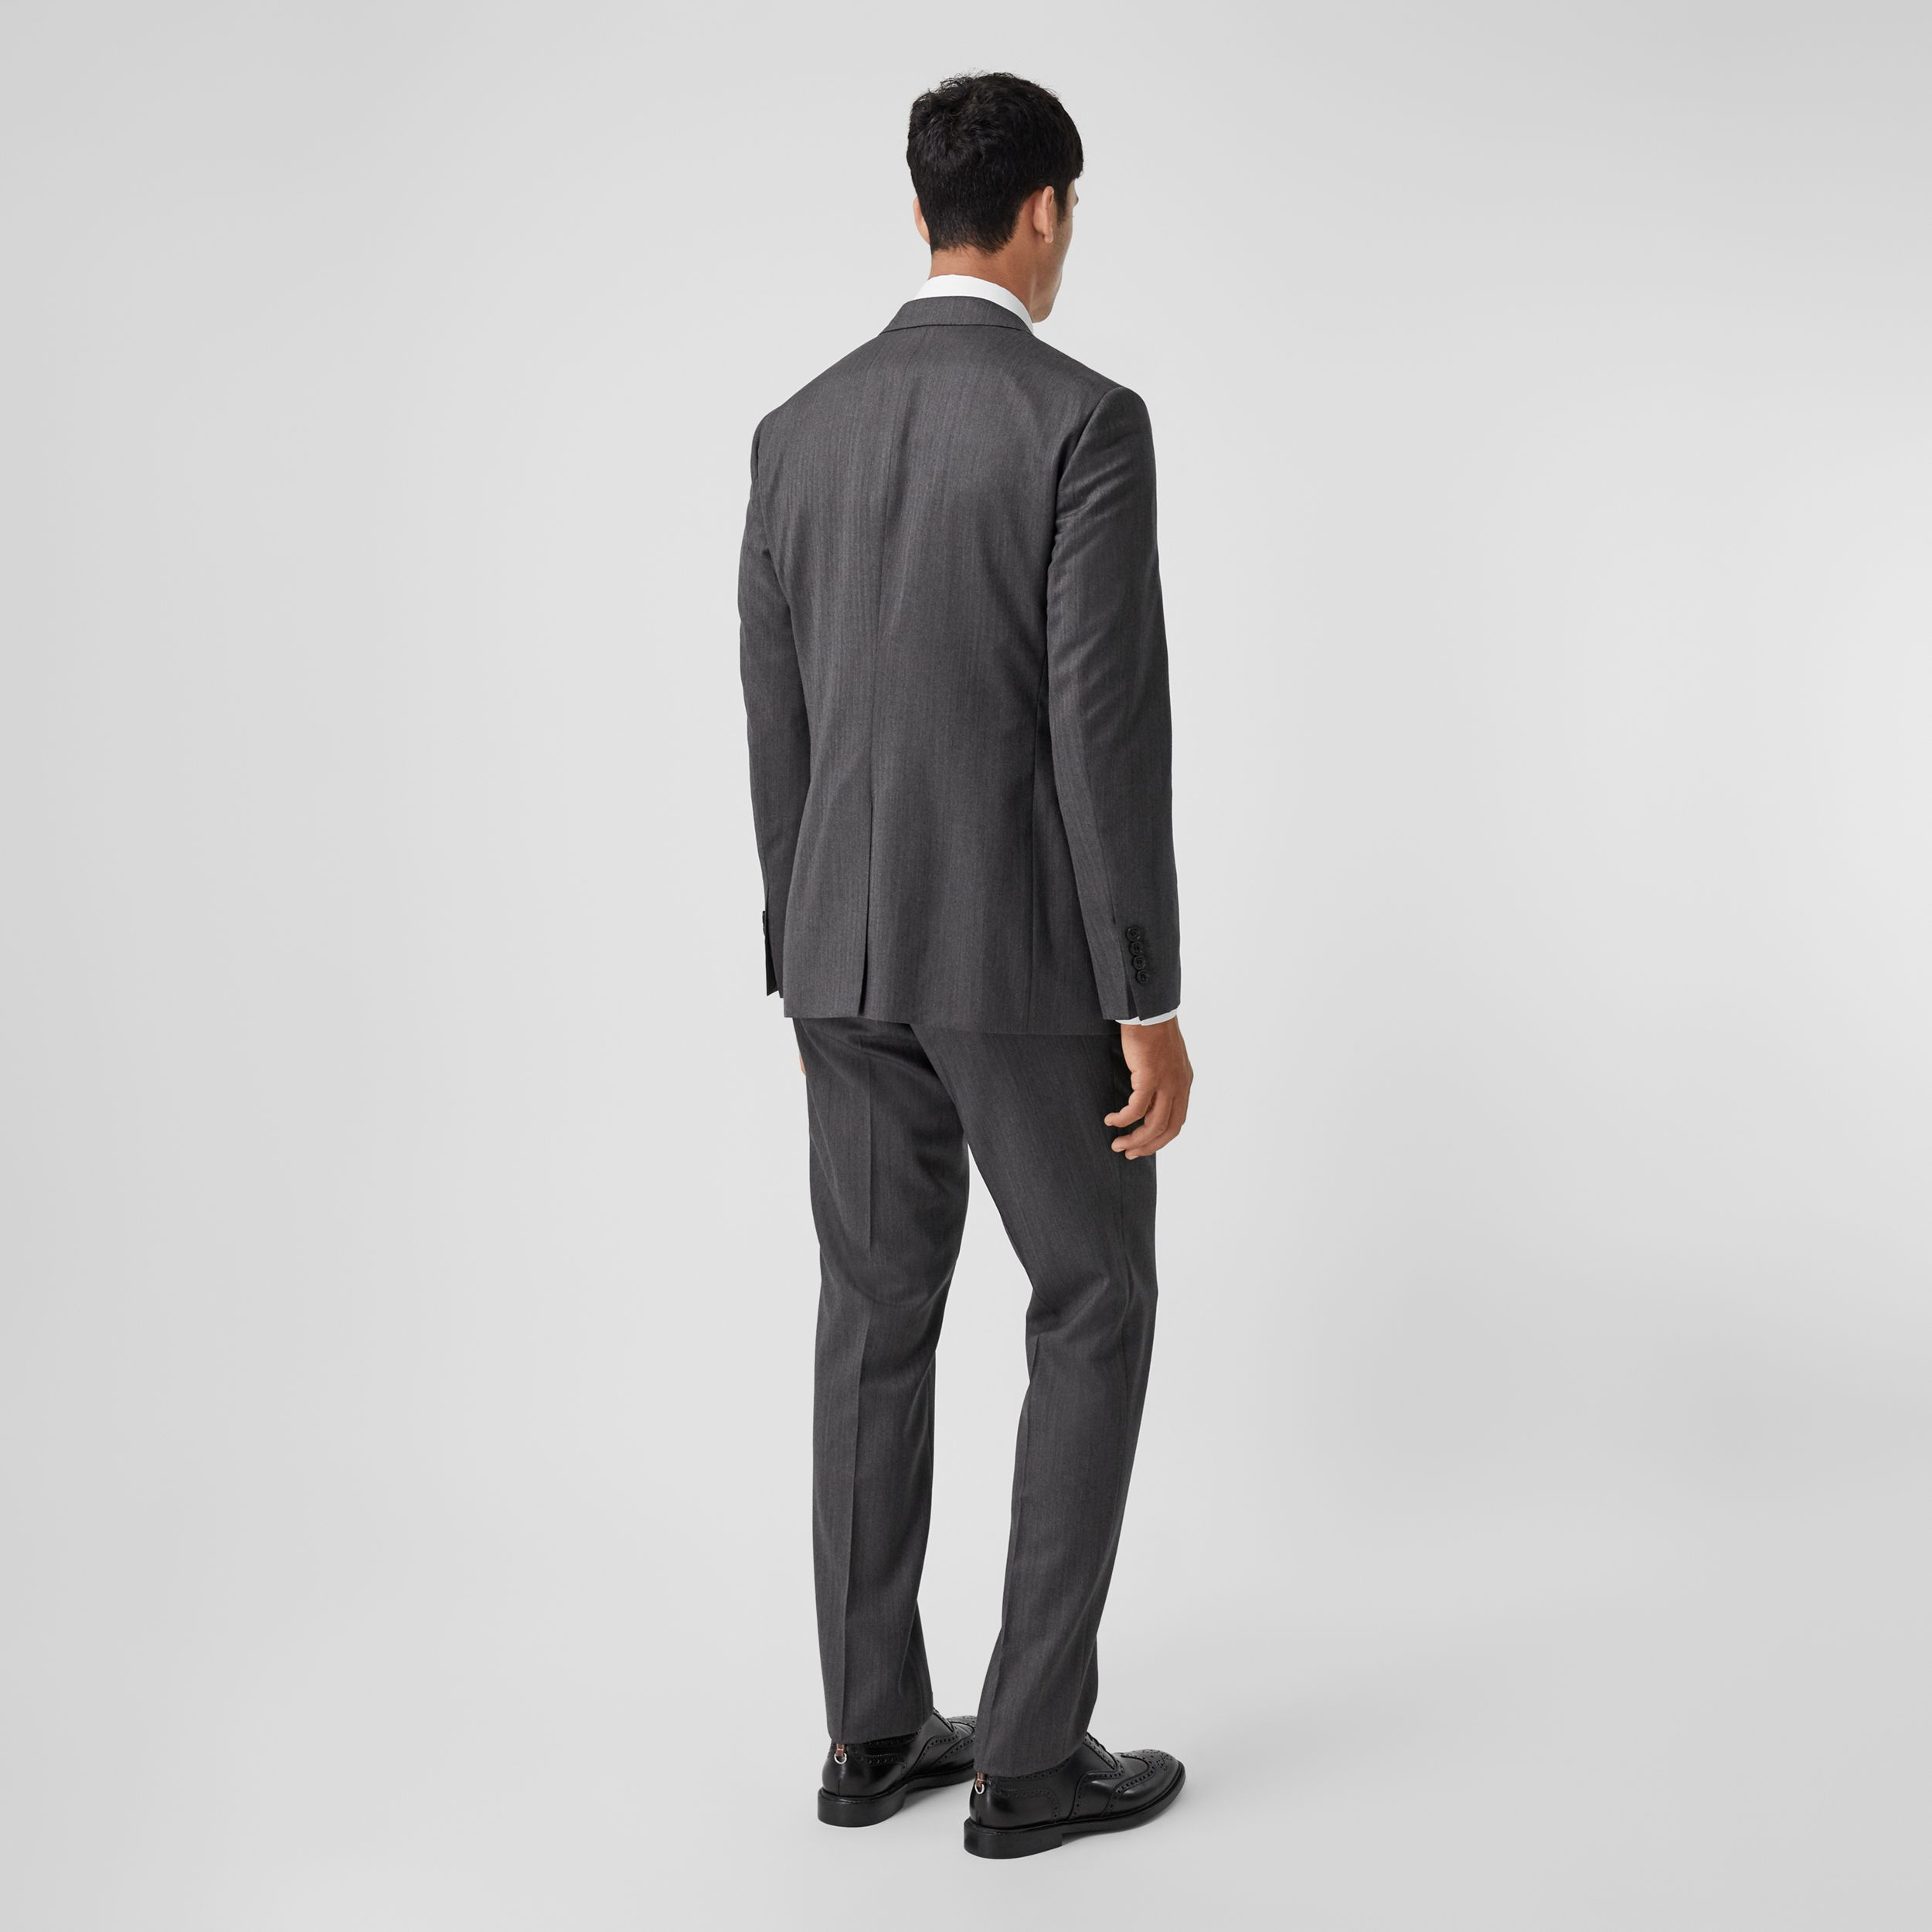 Slim Fit Herringbone Wool Suit in Mid Grey - Men | Burberry - 3